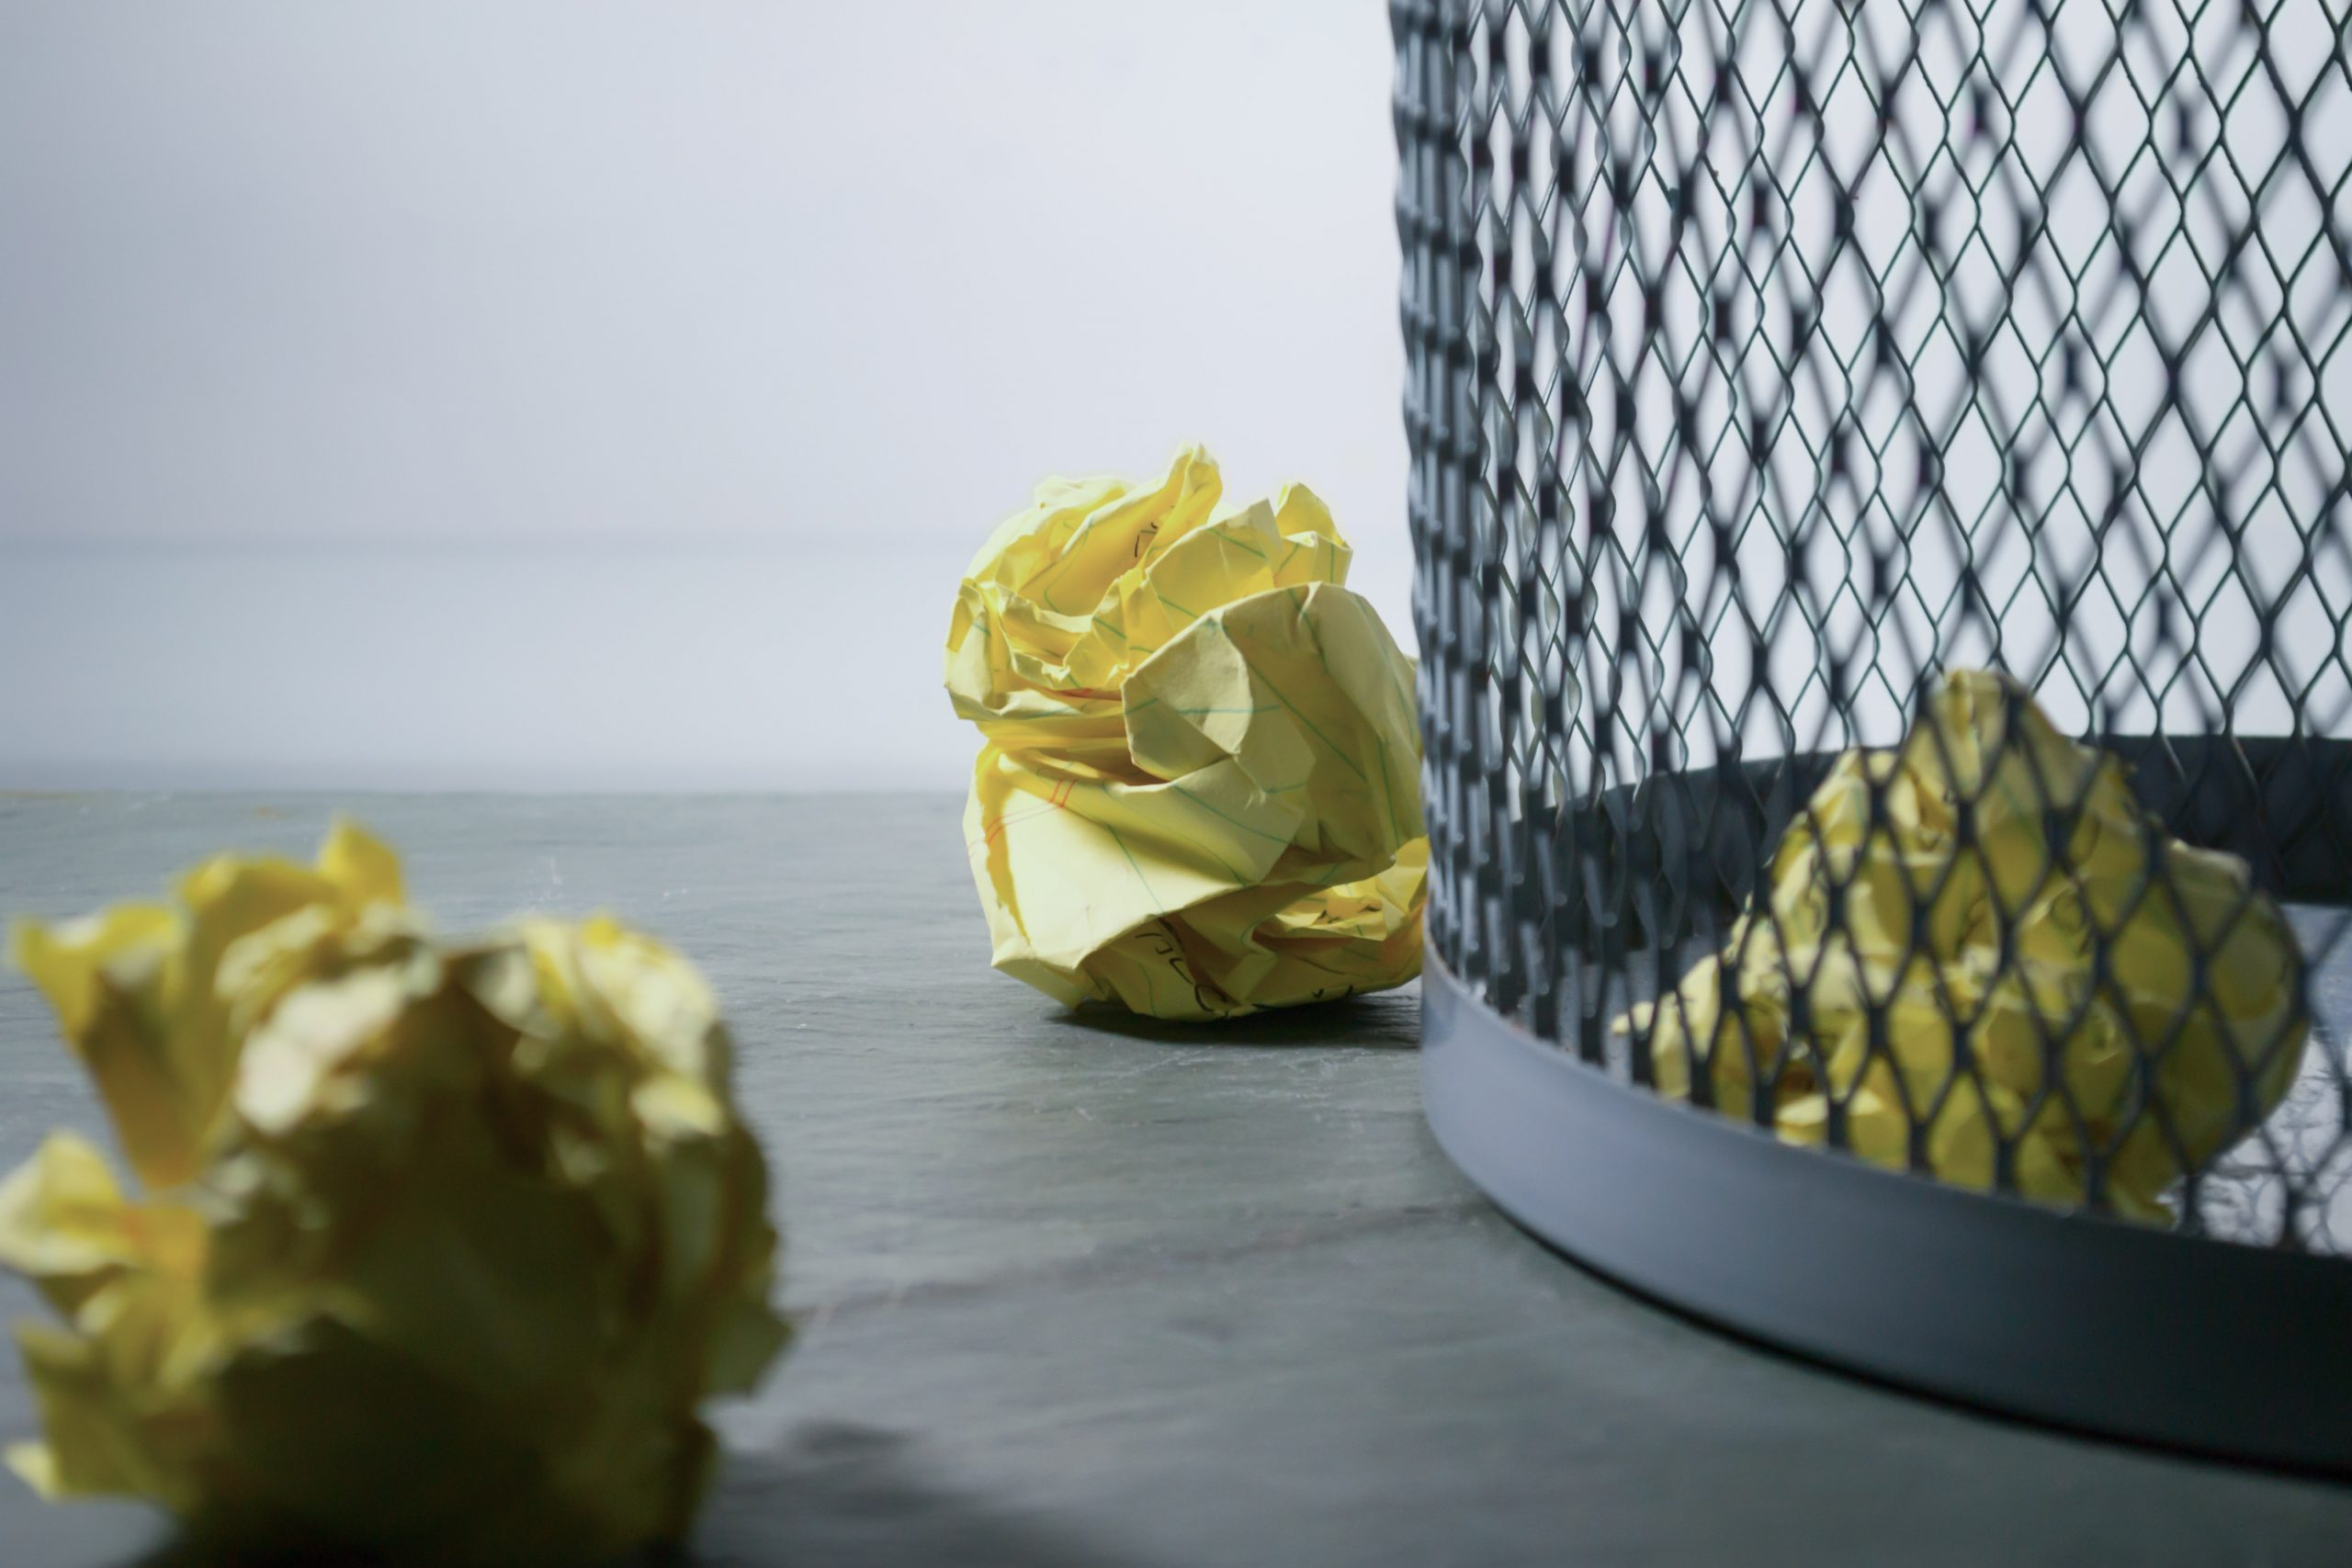 Crumbled paper next to a wastebasket